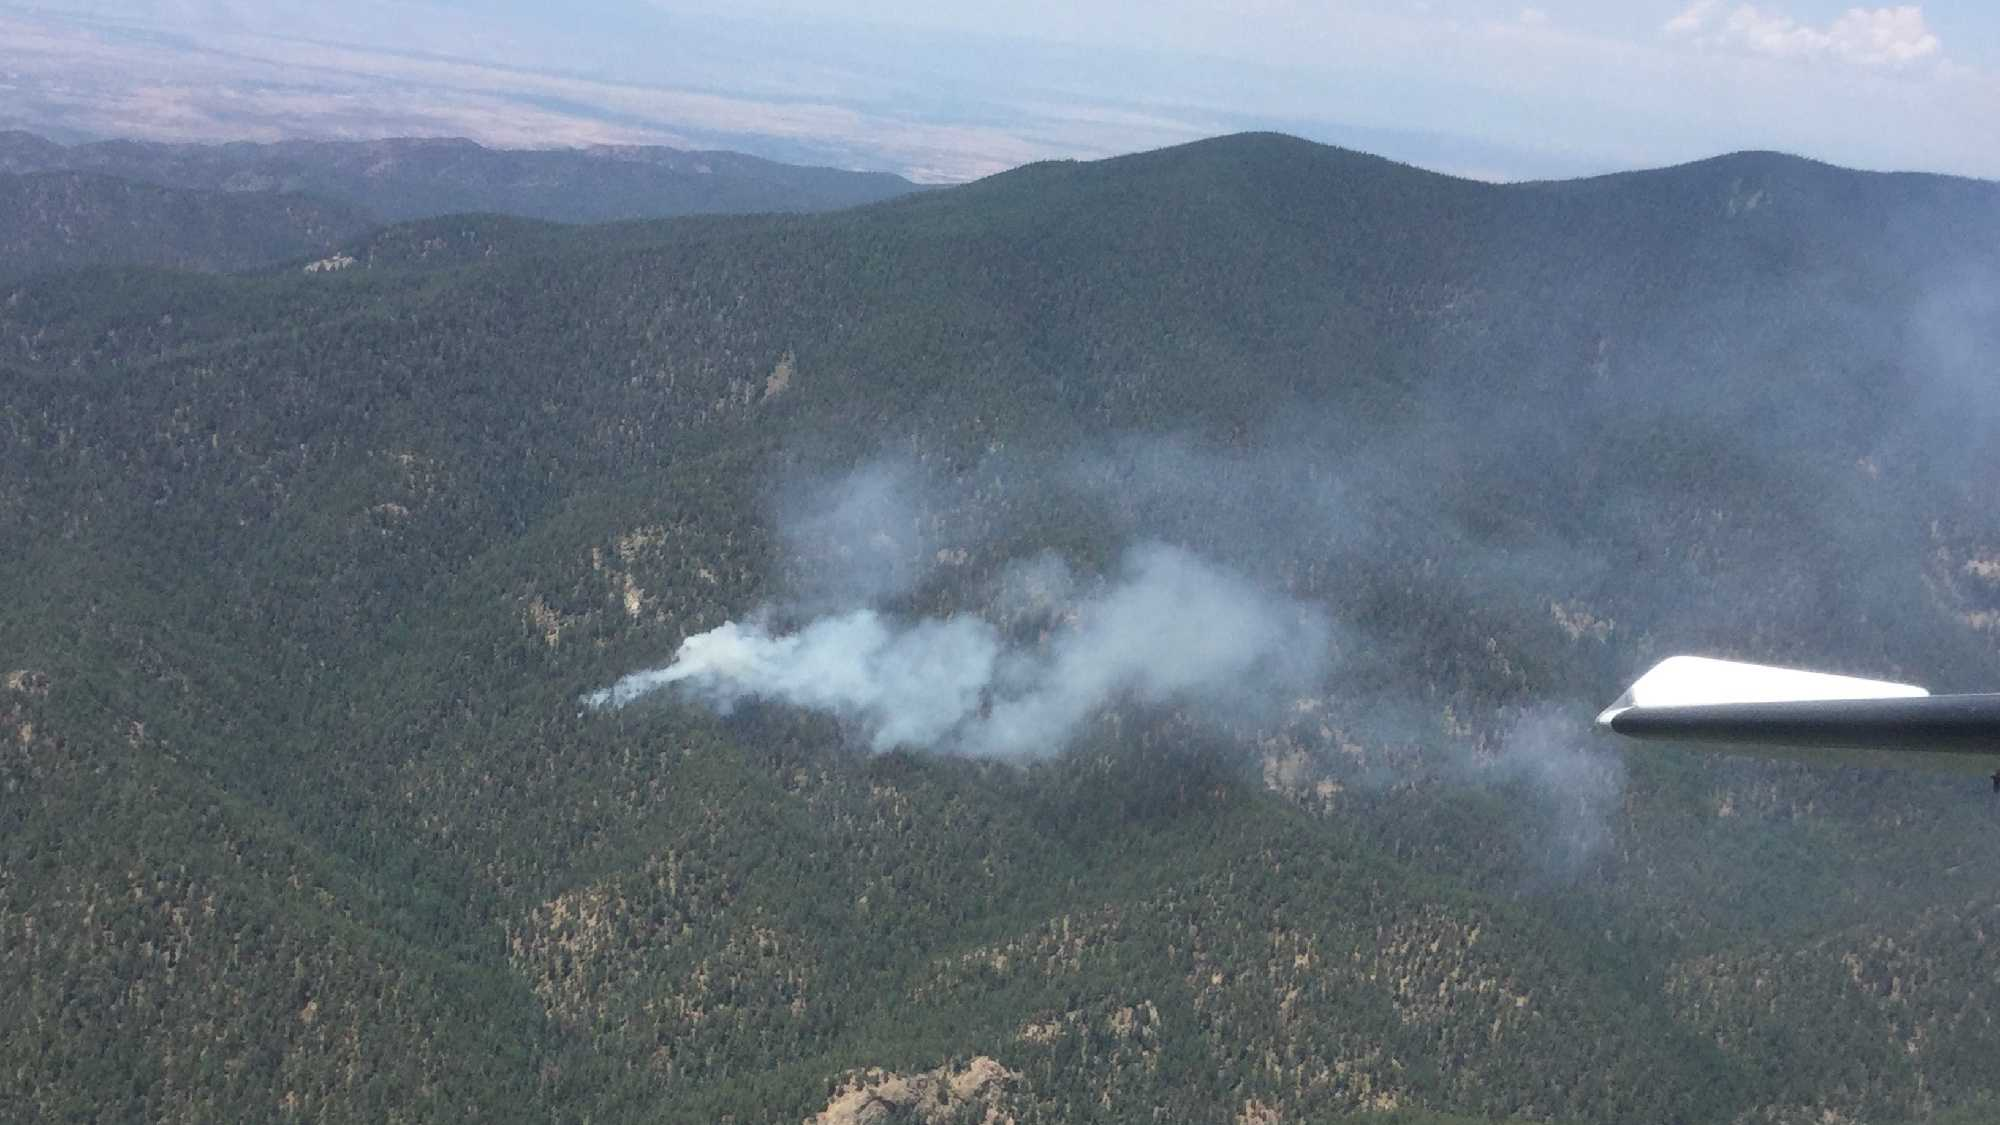 Fire officials are battling a fire in the Wilderness portion of the Santa Fe Municipal Watershed.